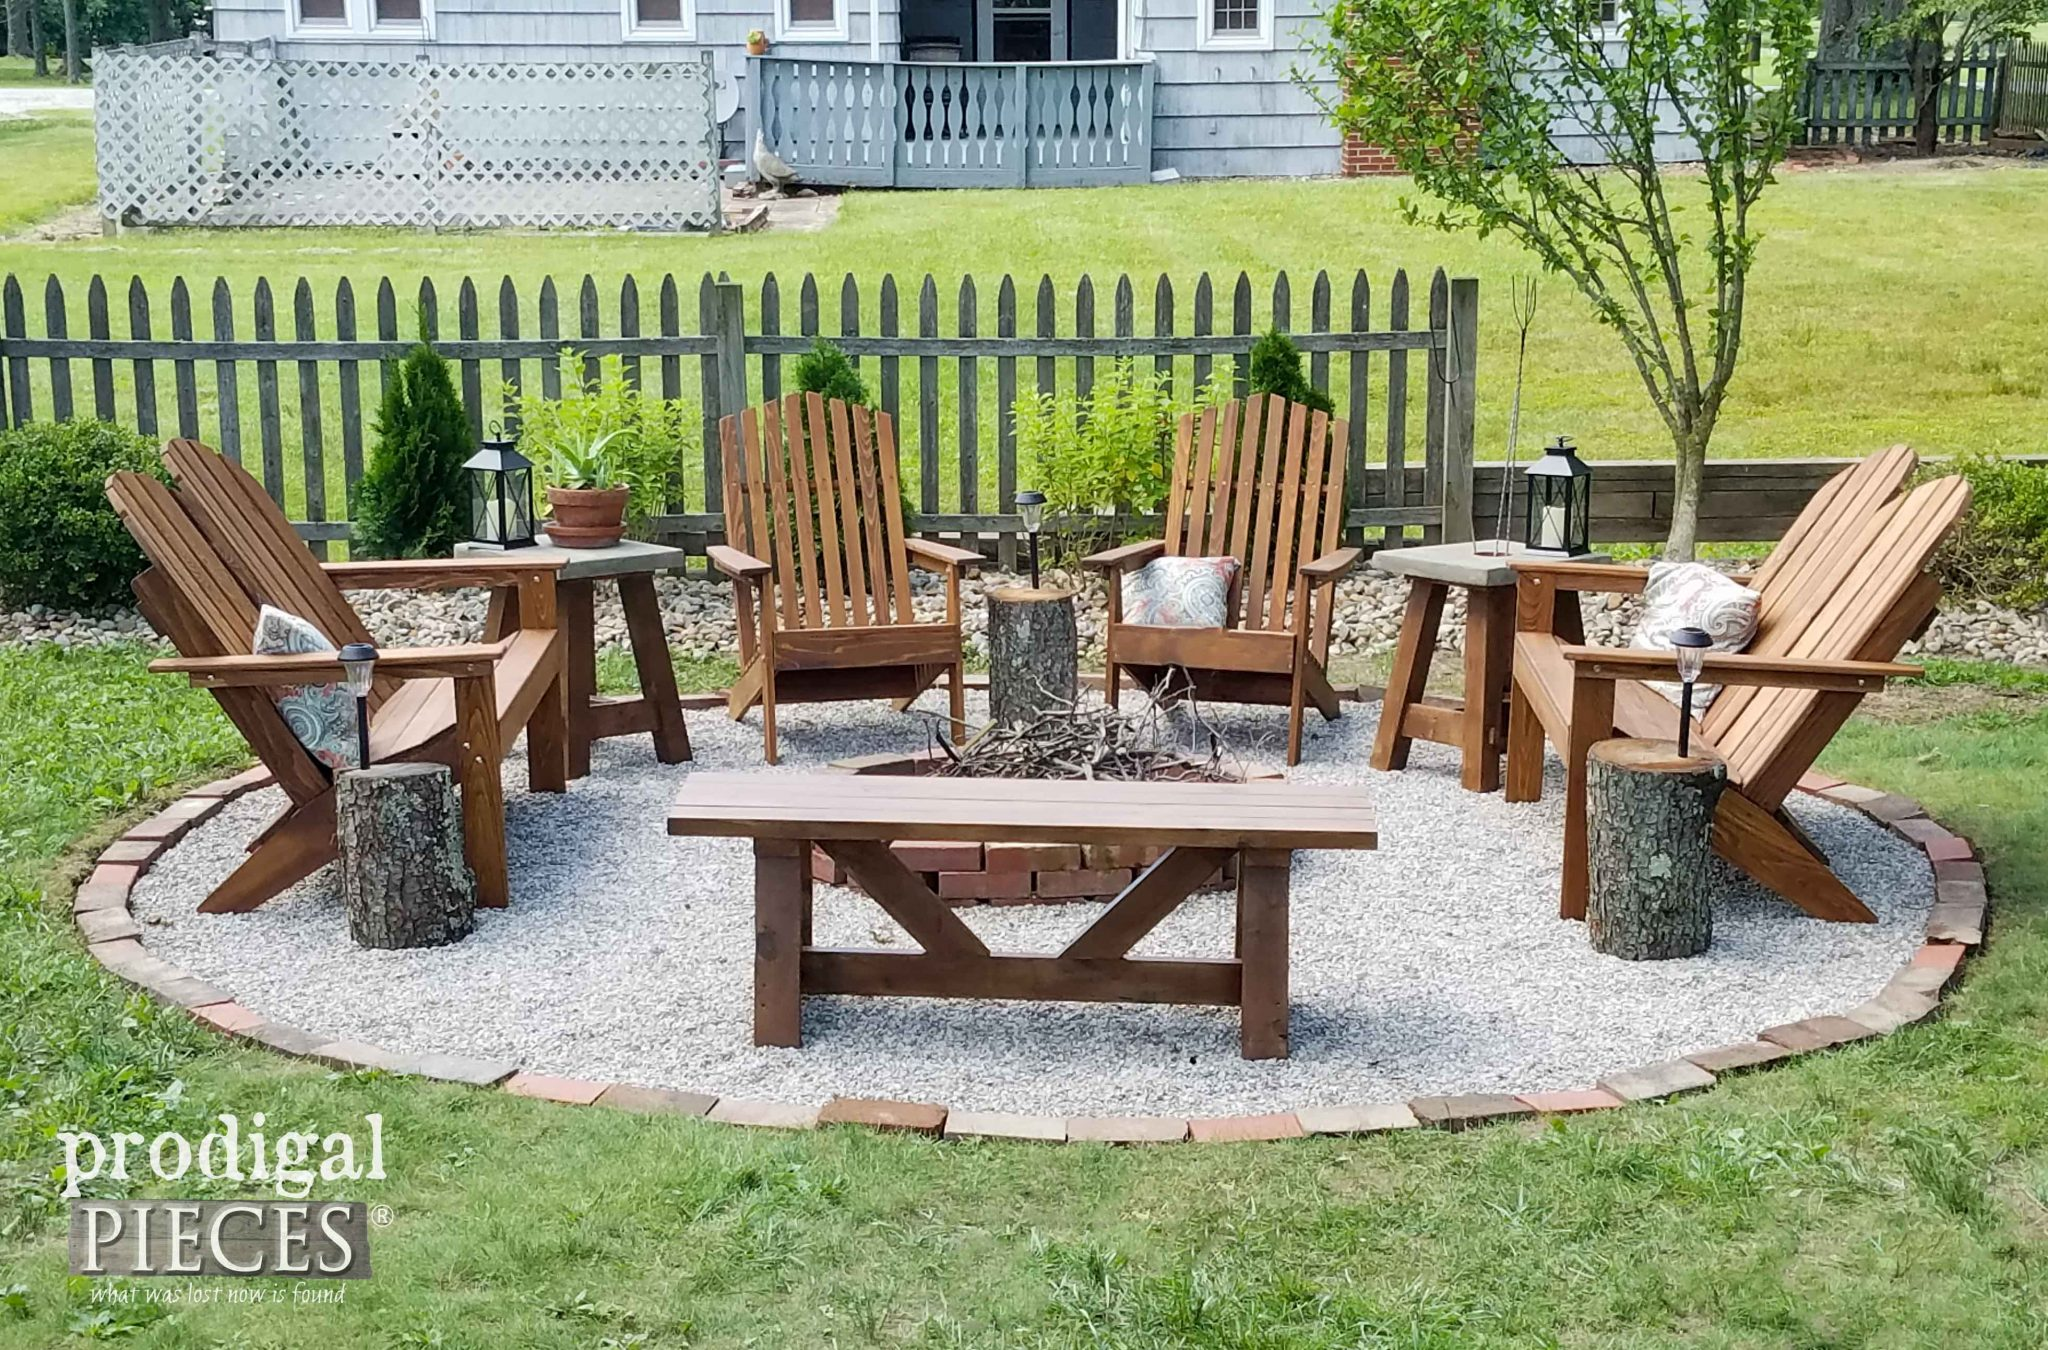 Backyard Fire Pit With Tutorial By Prodigal Pieces | Prodigalpieces.com